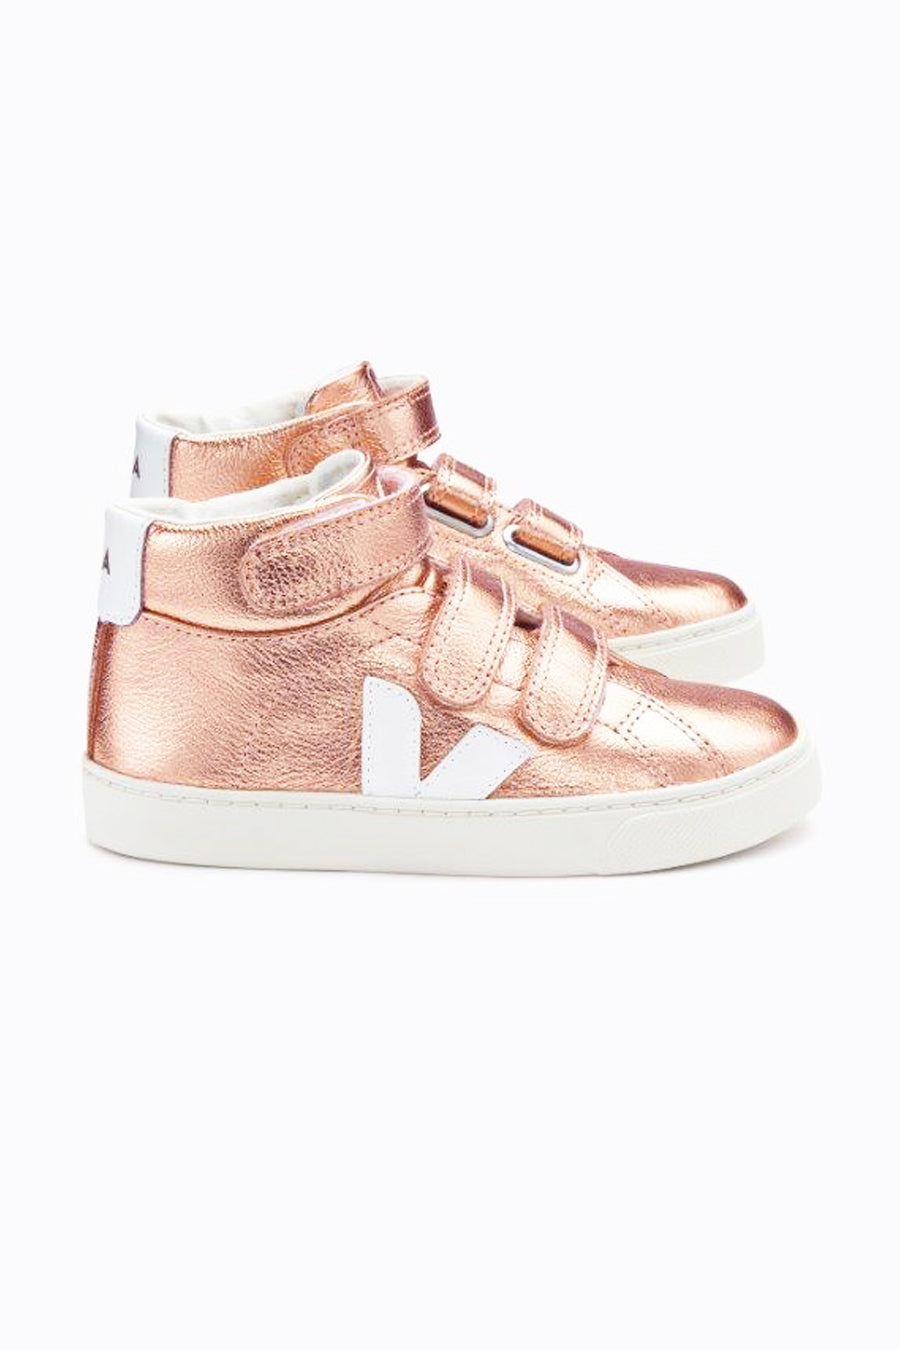 Veja Esplar High Top Kids Shoes- Nacre Pierre